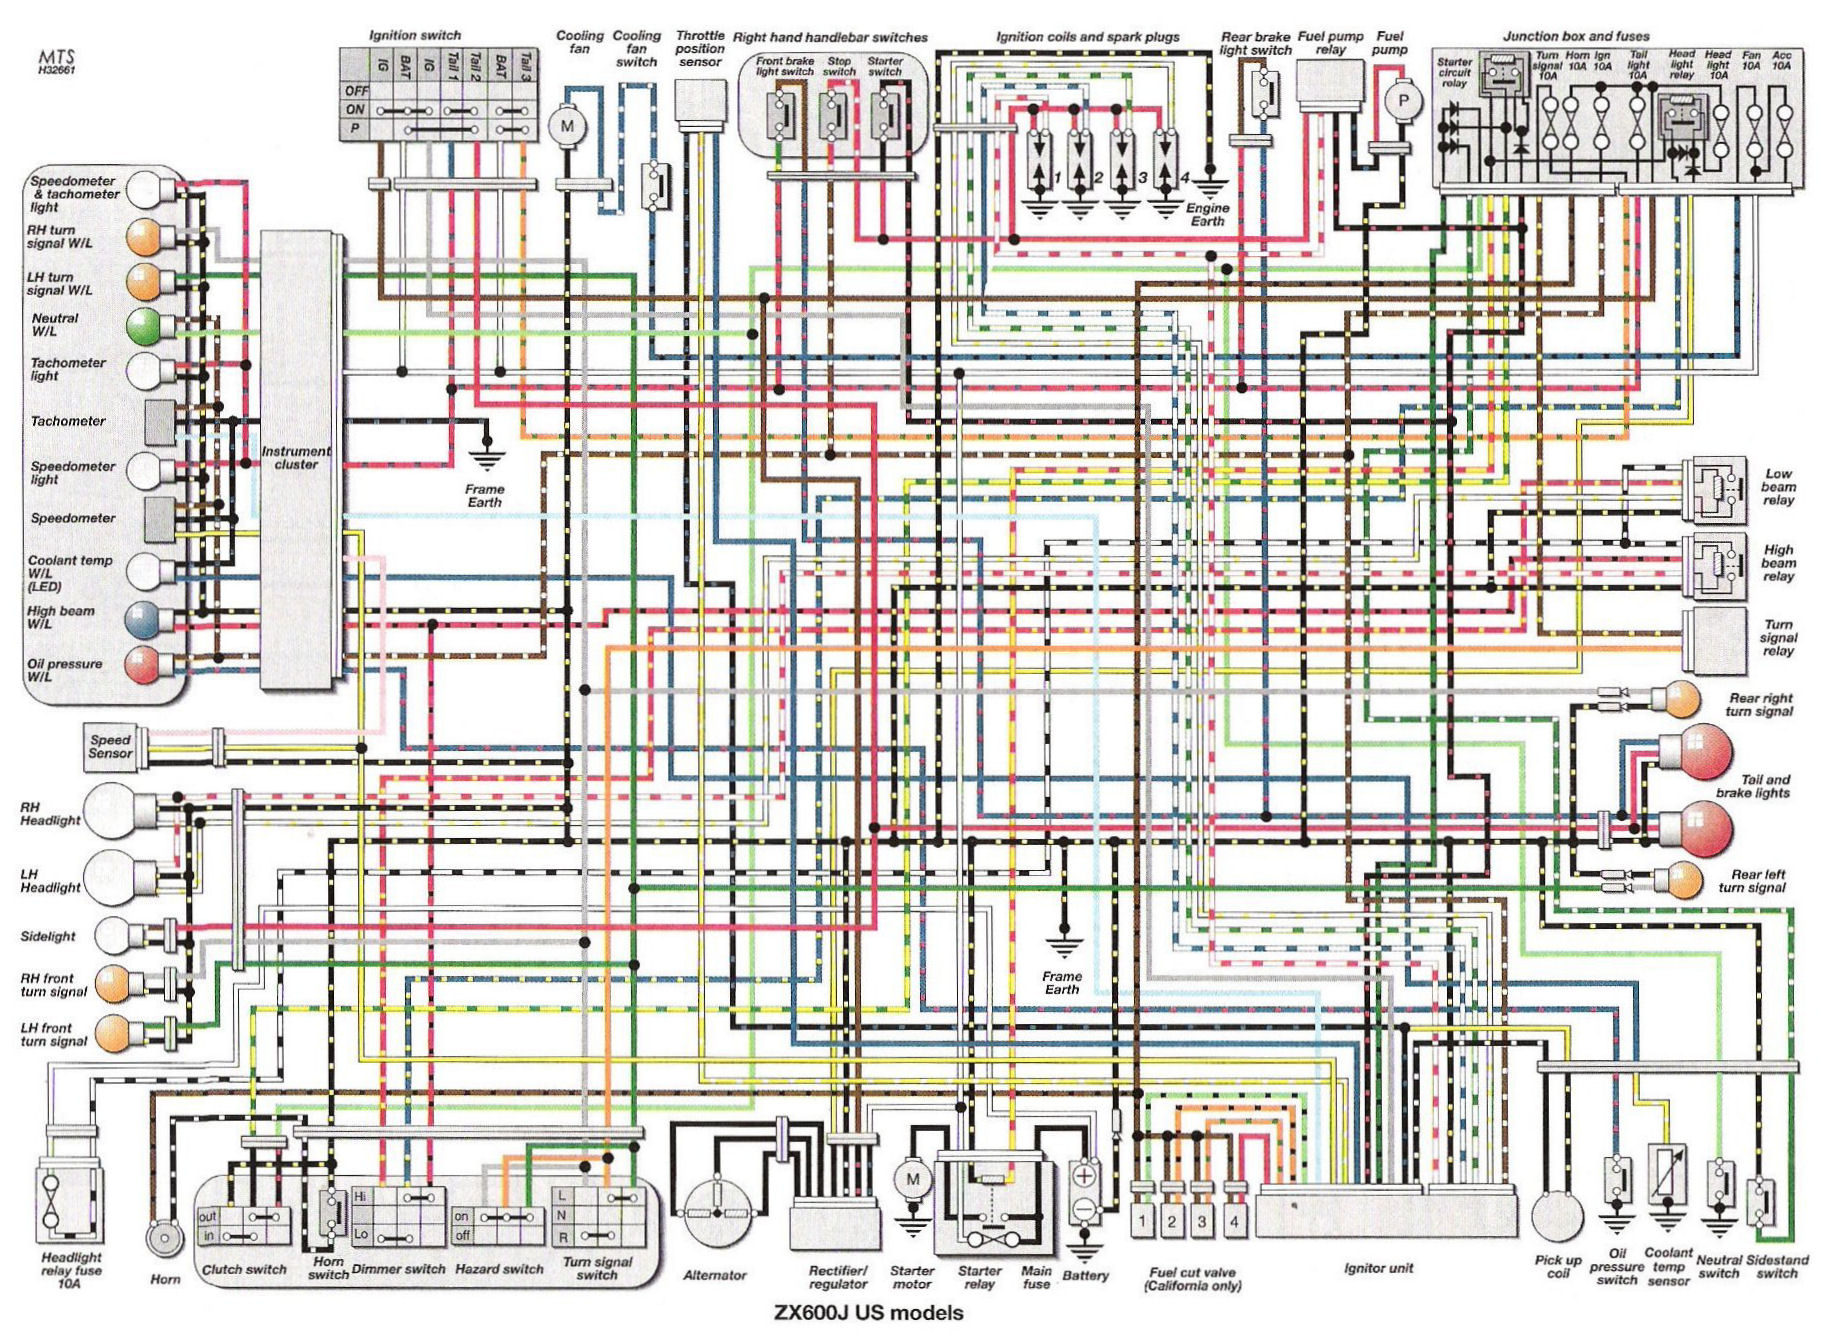 zx600j_us?zoom=2.625&resize=665%2C488 wiring diagram for 2007 gsxr 600 readingrat net 07 zx6r wiring diagram at soozxer.org